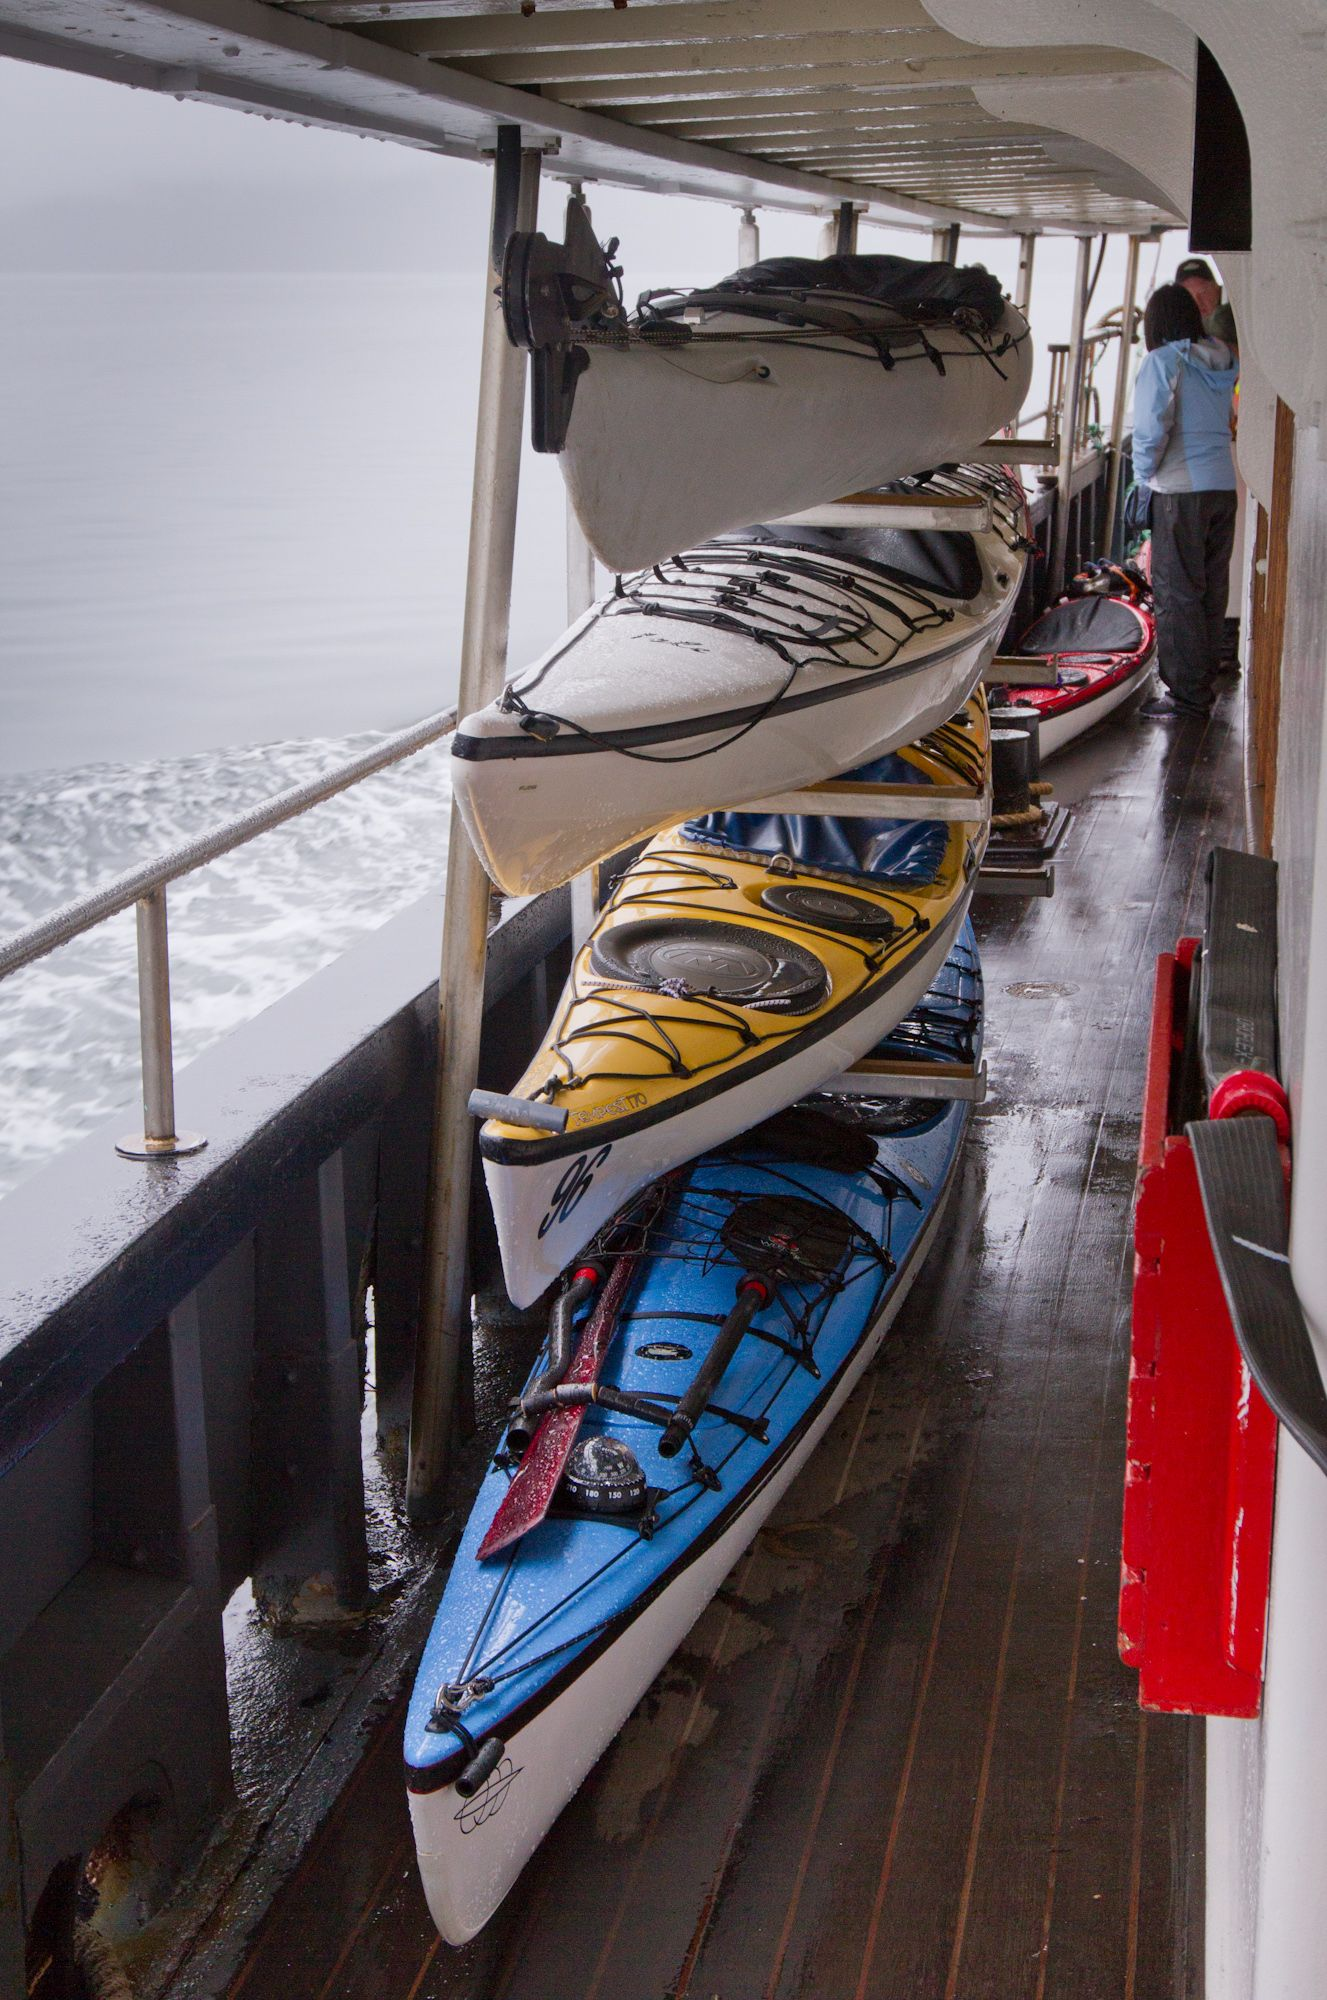 Travel aboard the MV Uchuck III with your kayak for a trip of a lifetime!